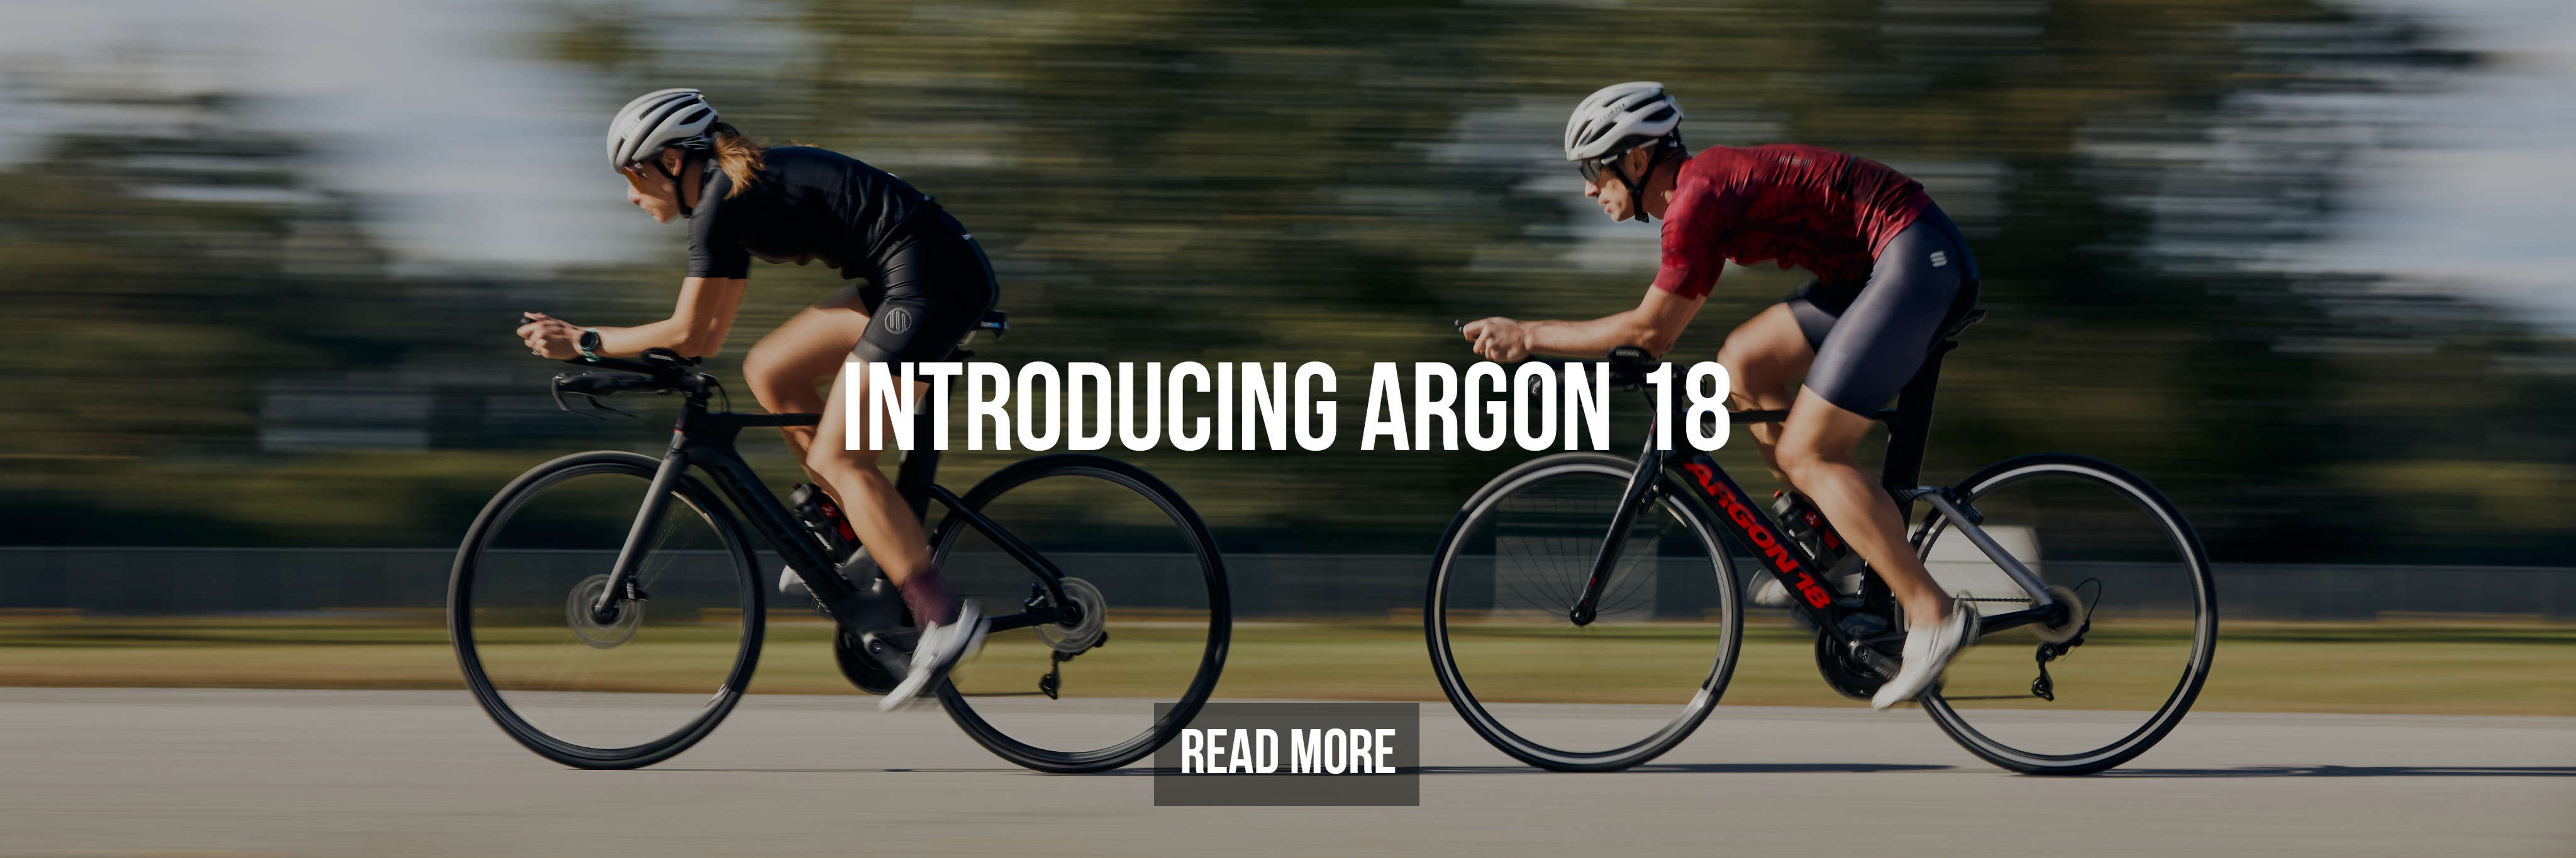 Introducing Argon 18